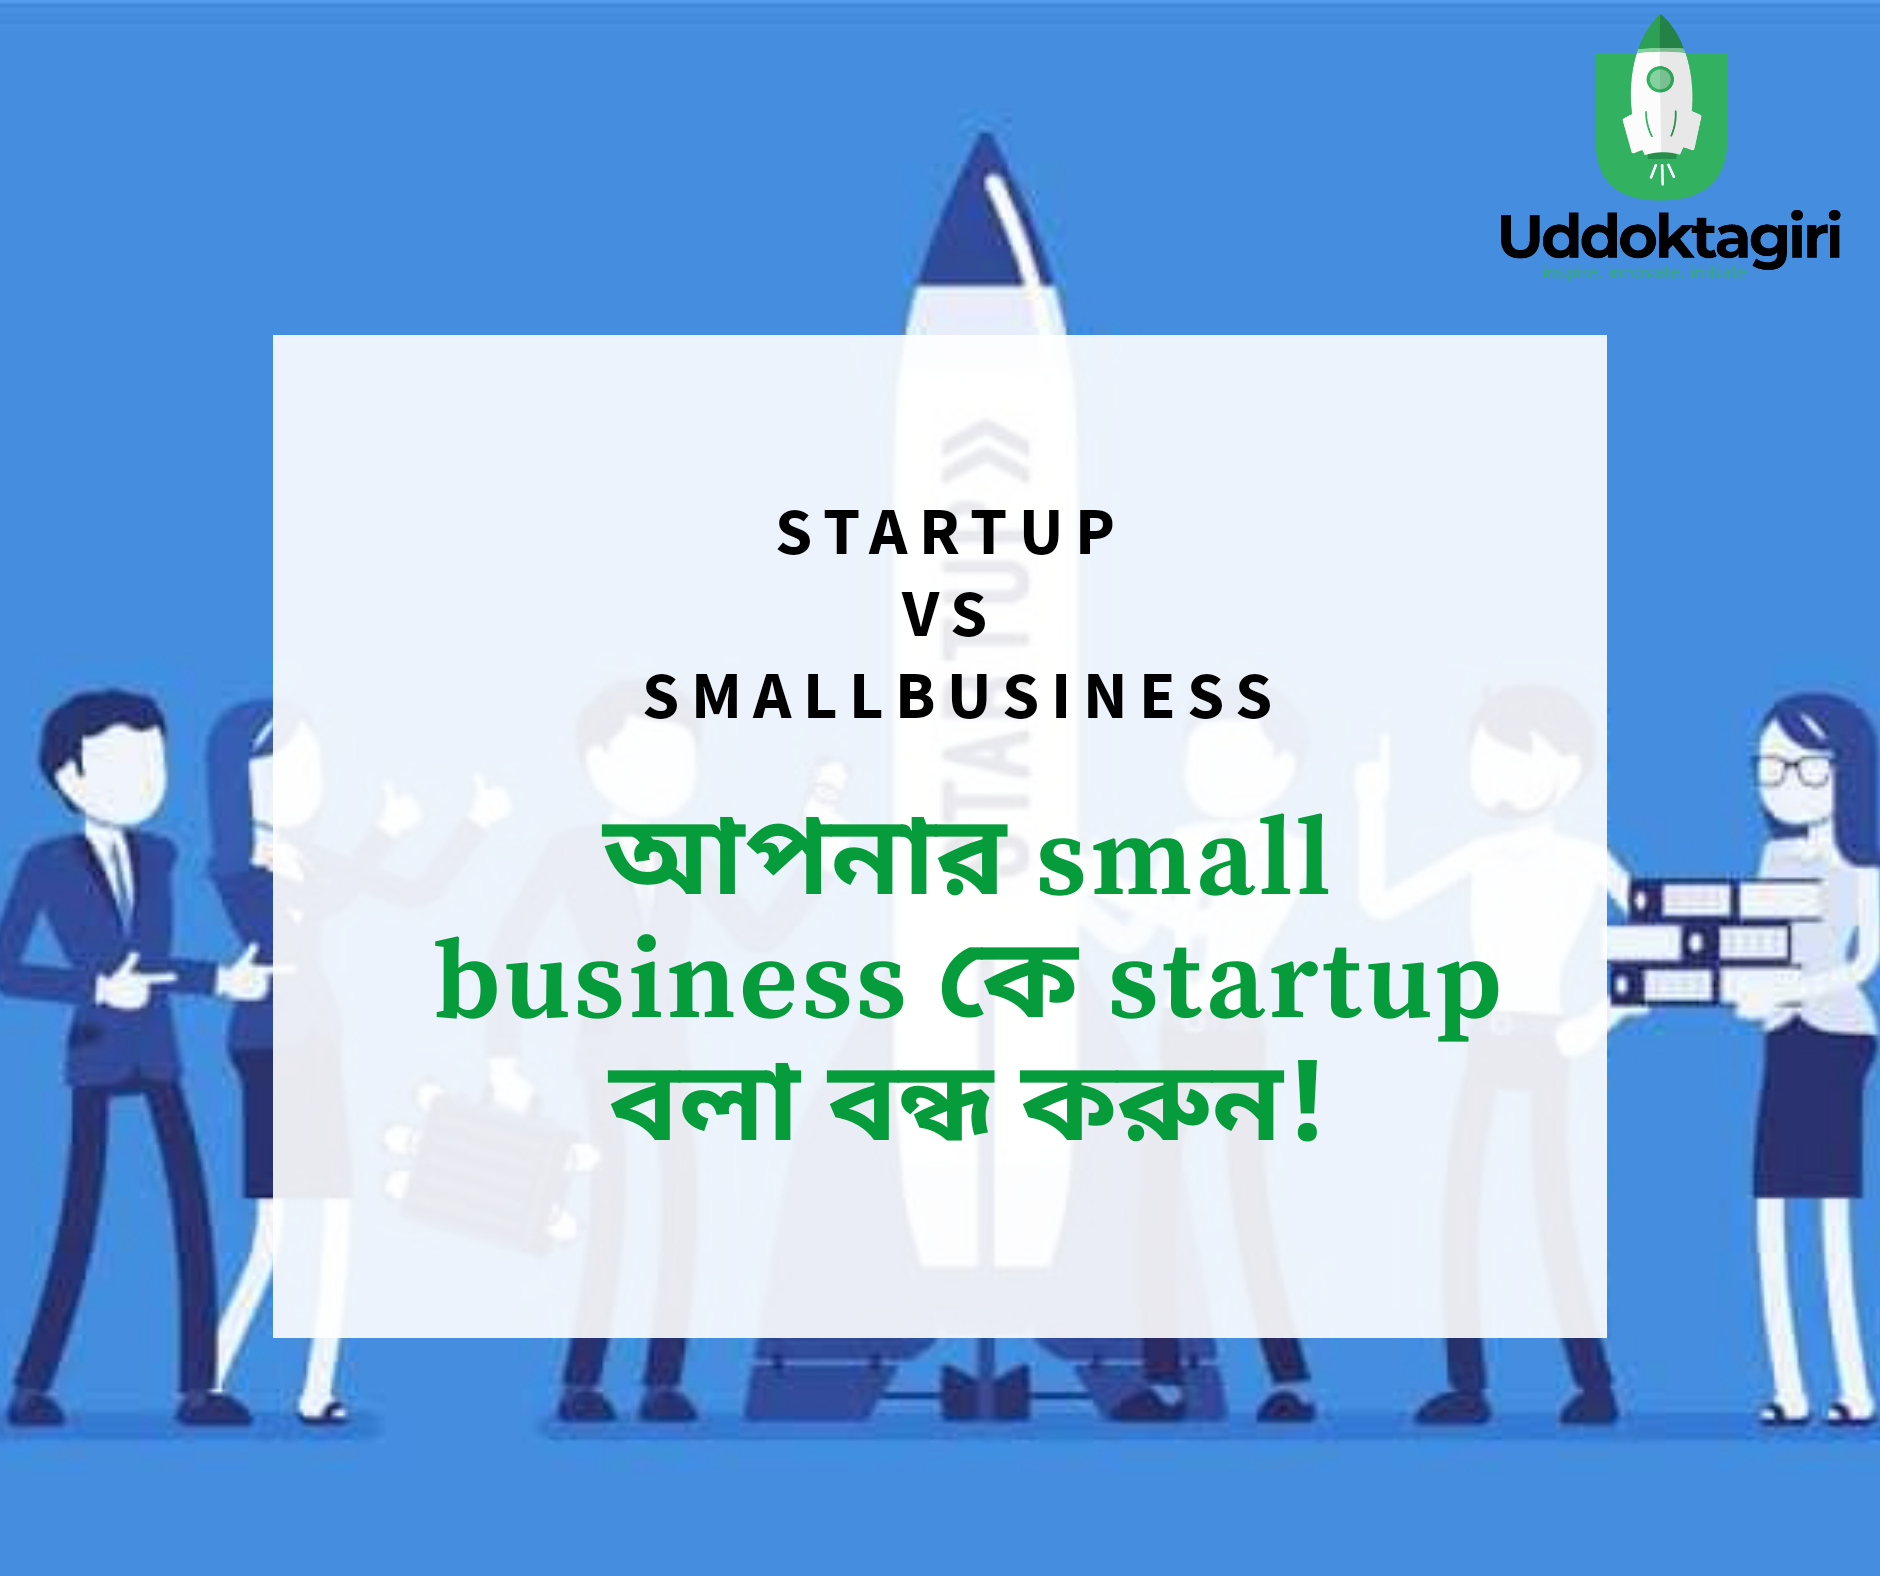 Startup vs Small Business :  আপনার Small business কে Startup বলা বন্ধ করুন!